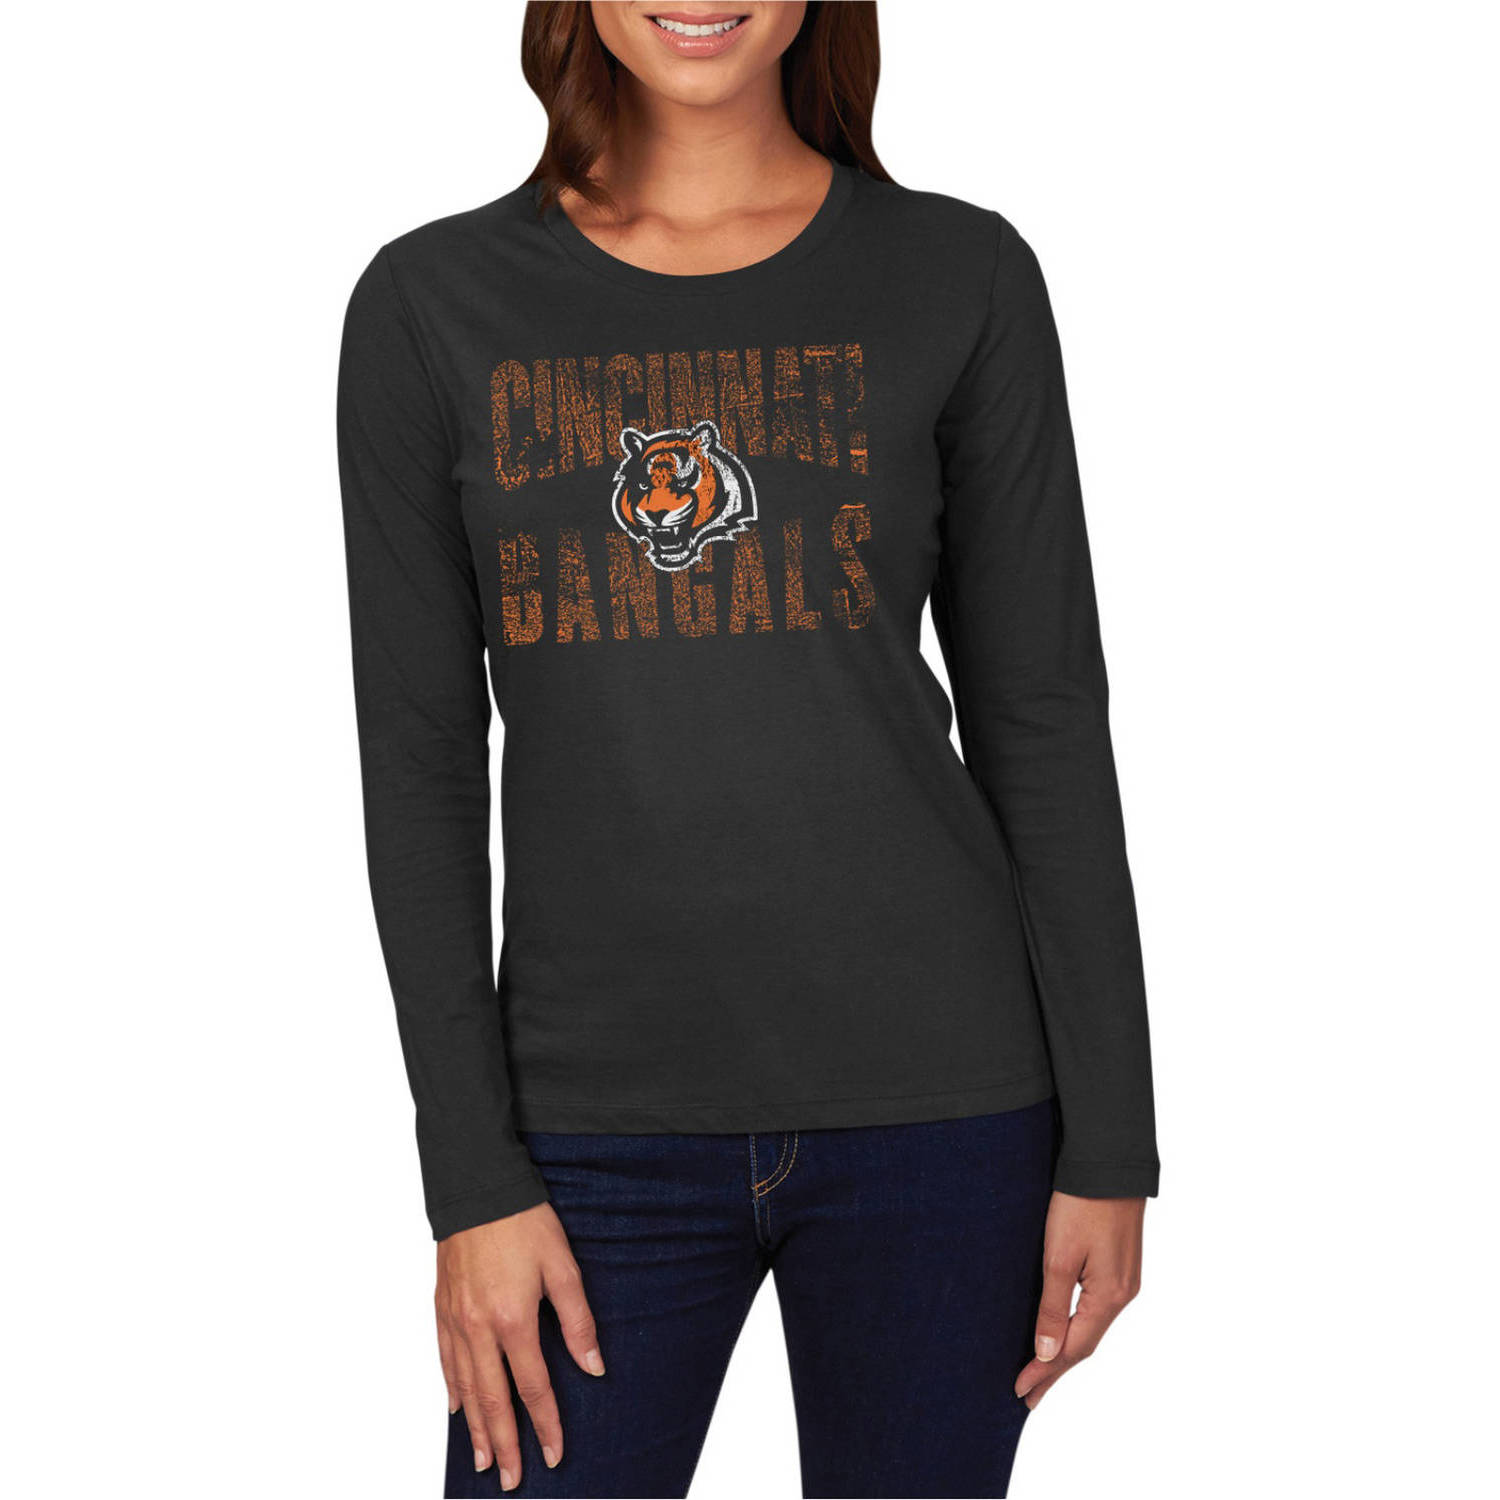 NFL Cincinnati Bengals Women's Plus Long Sleeve Crew Neck Tee